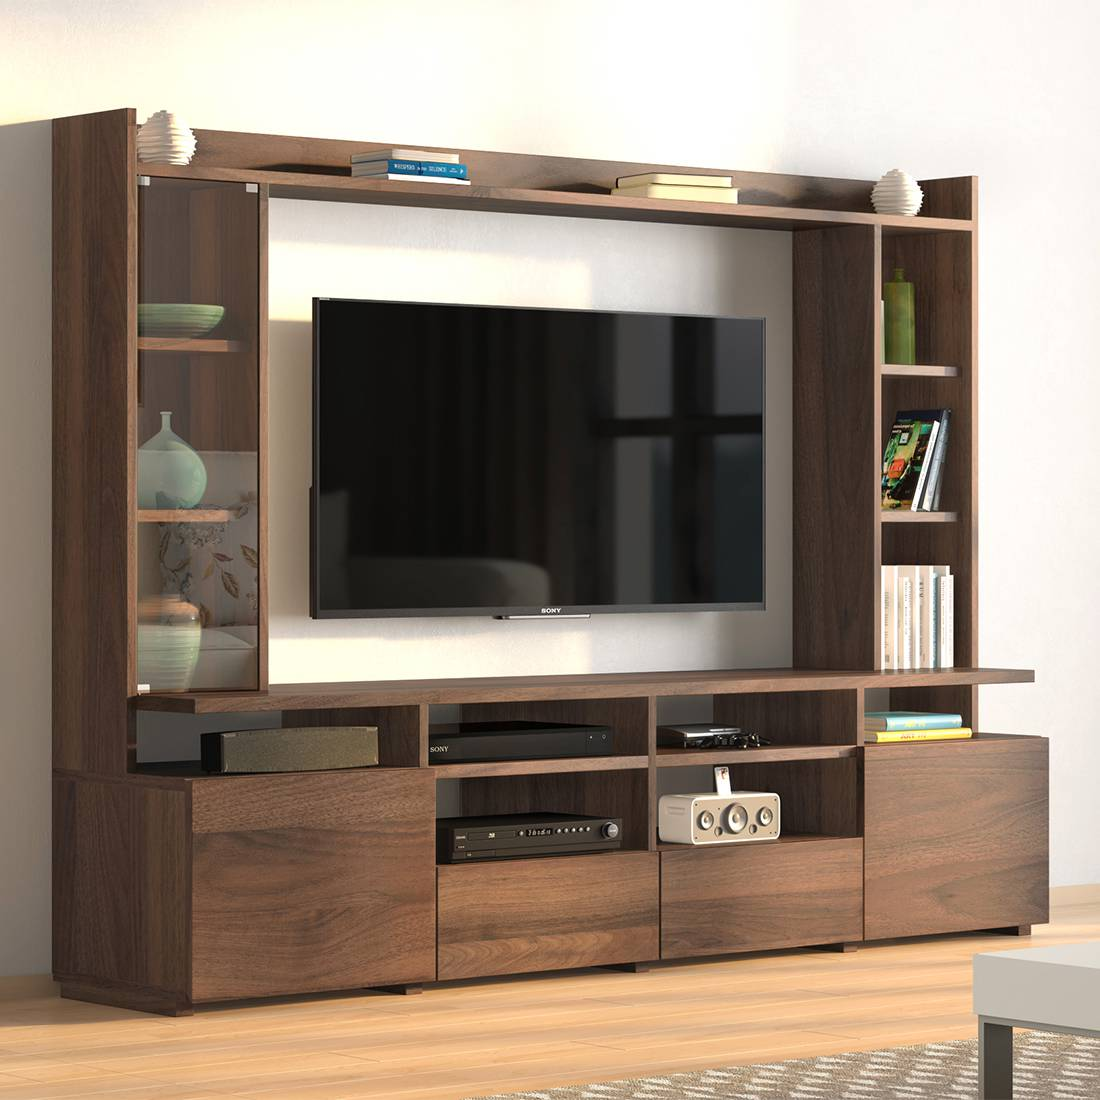 Tv Units For Home Latest Tv Cabinet Designs Urban Ladder